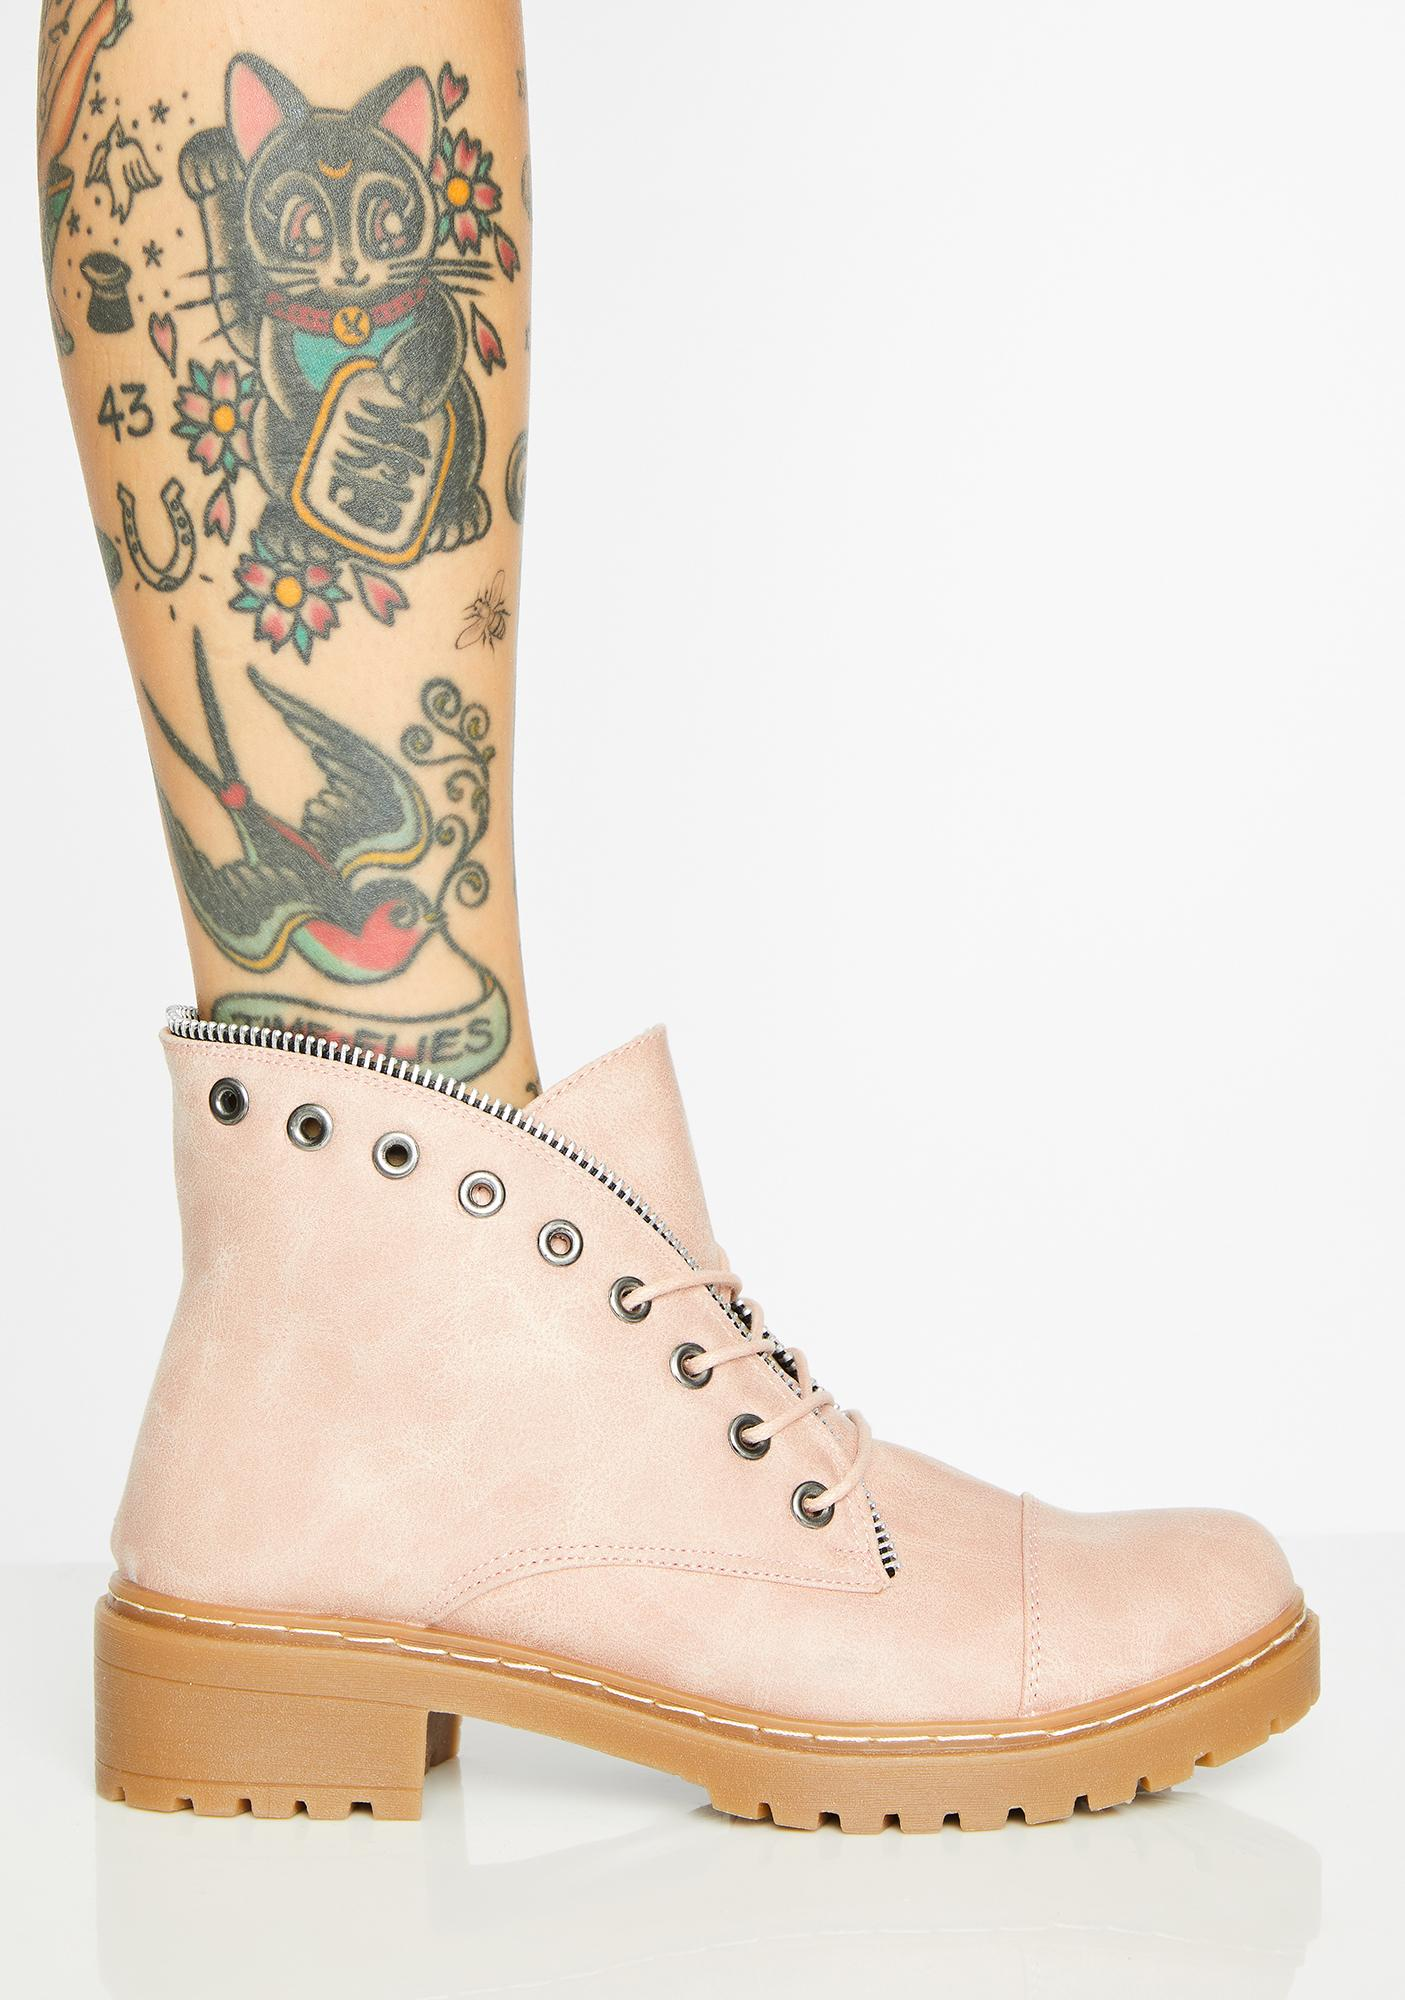 Sweet Sneak Attack Ankle Boots